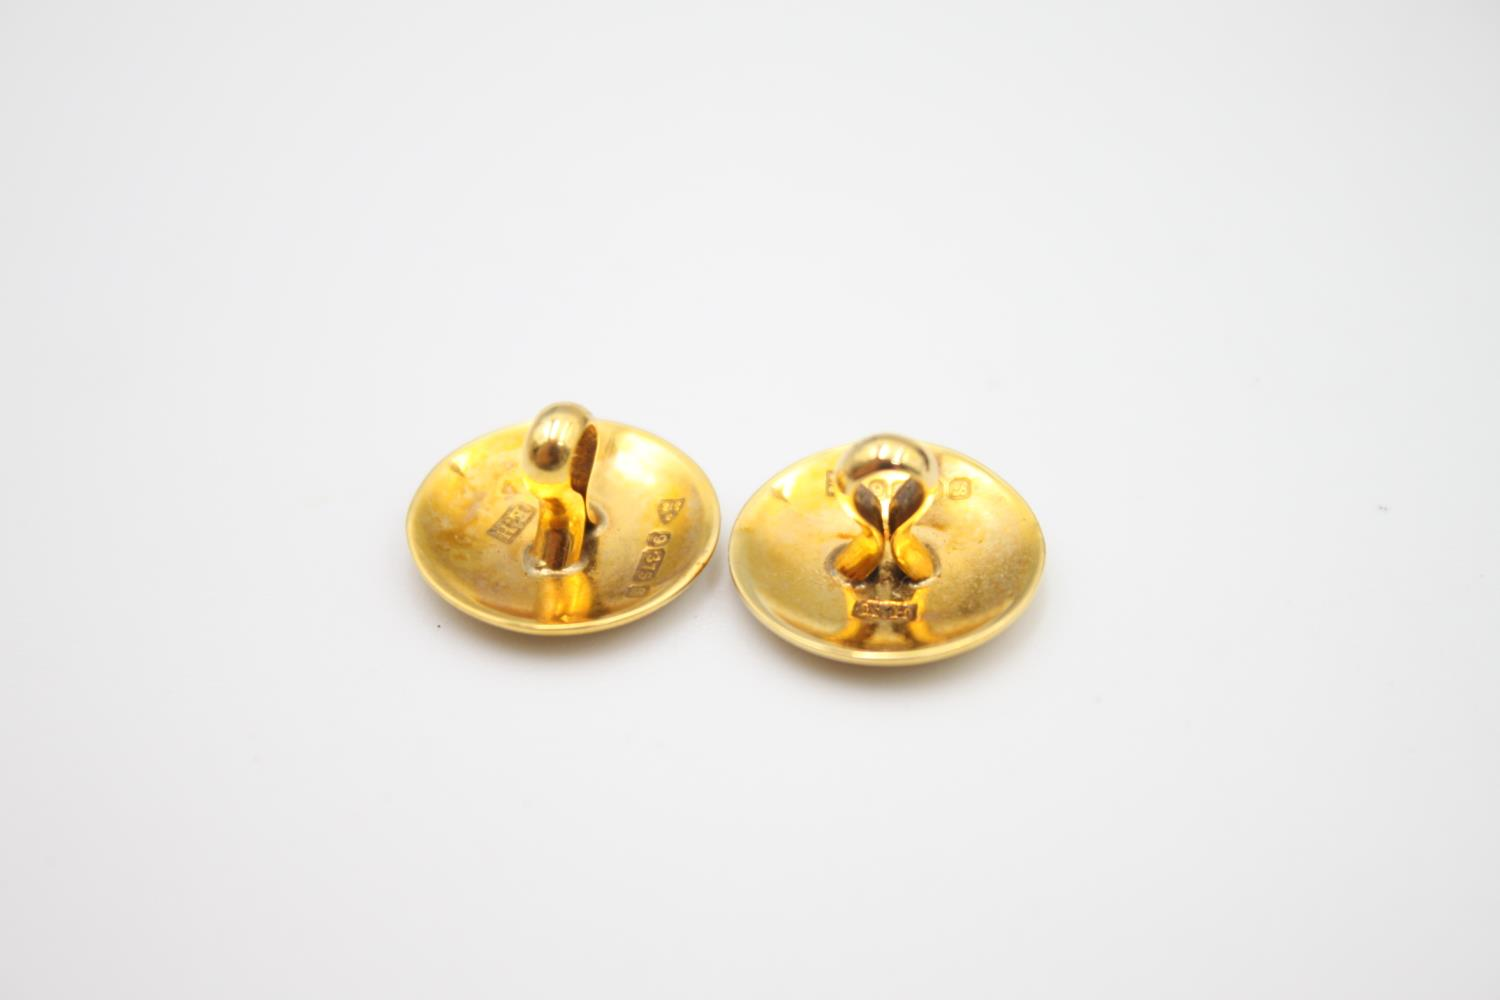 antique 9ct gold gents dress stud set in fitted case 6.6g - Image 6 of 6